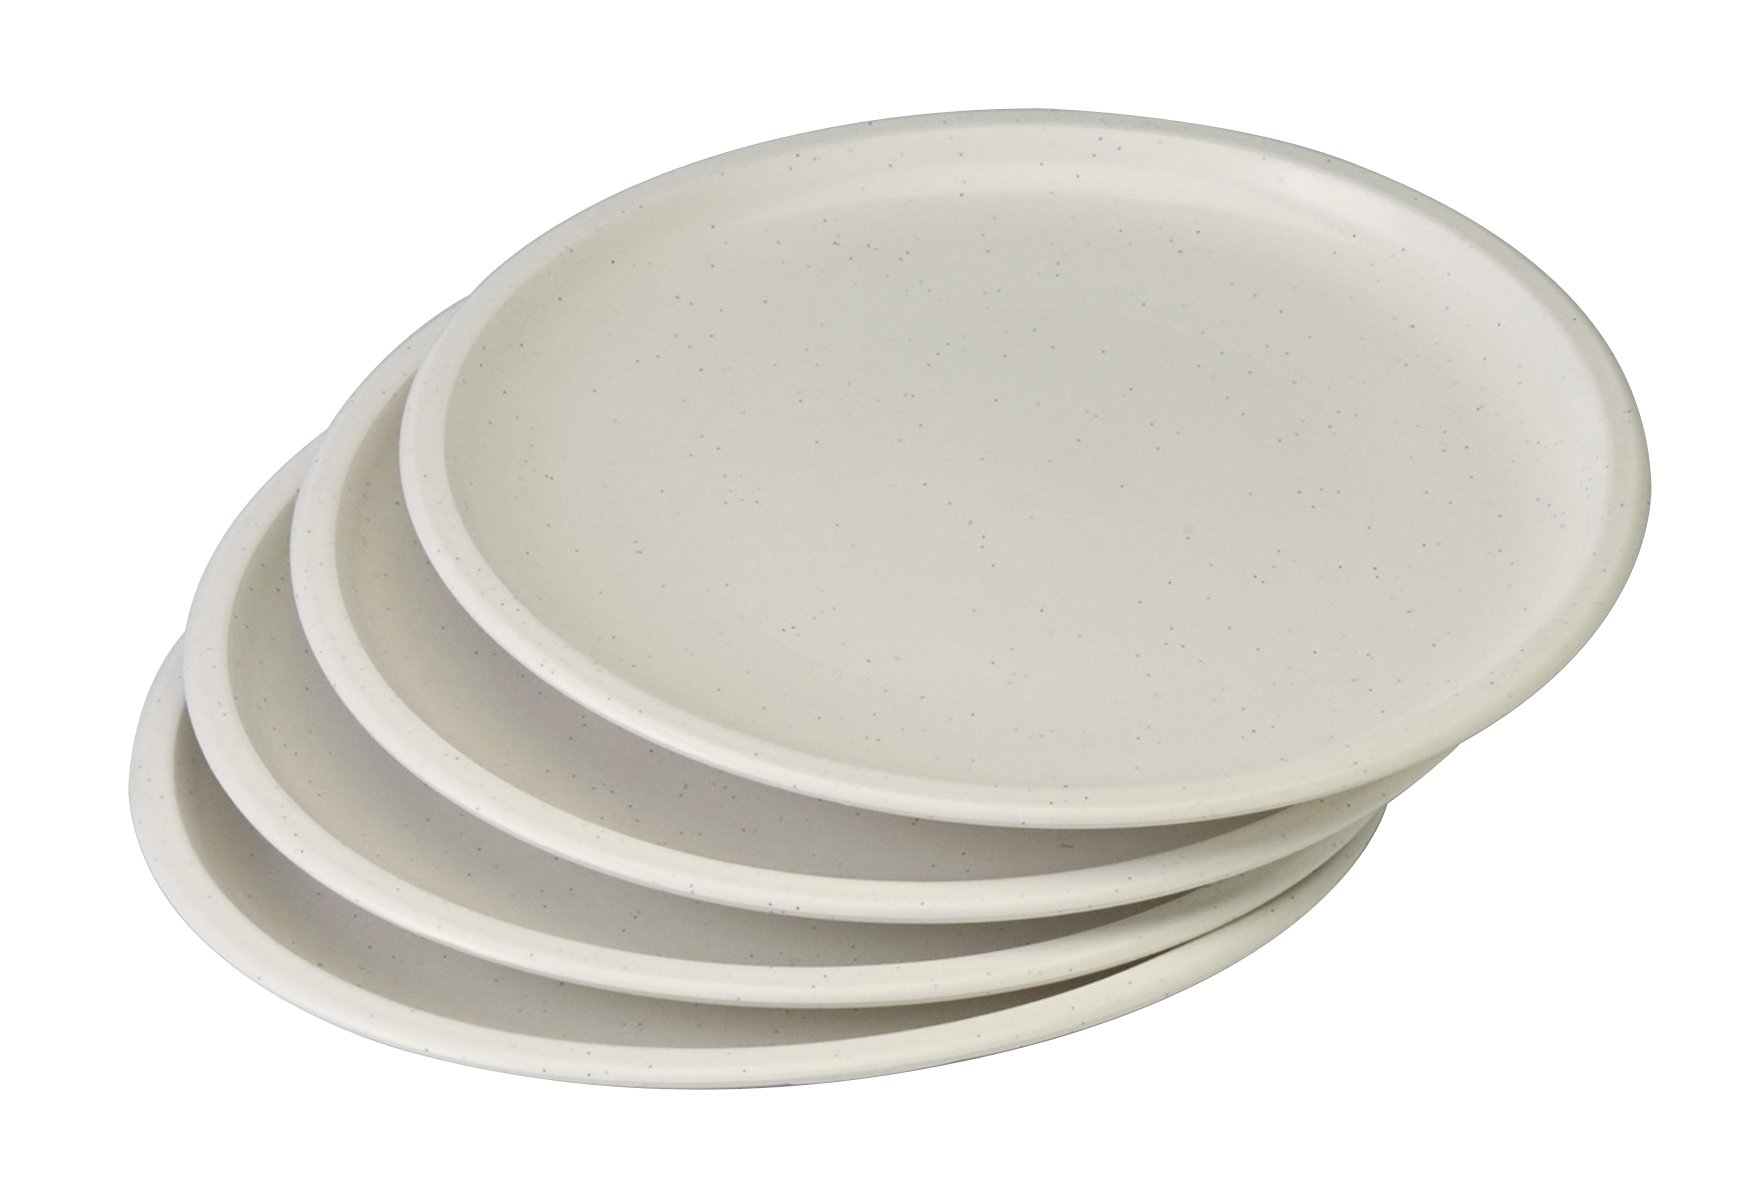 Prep Solutions by Progressive Microwavable Plates - Set of 4 by Progressive